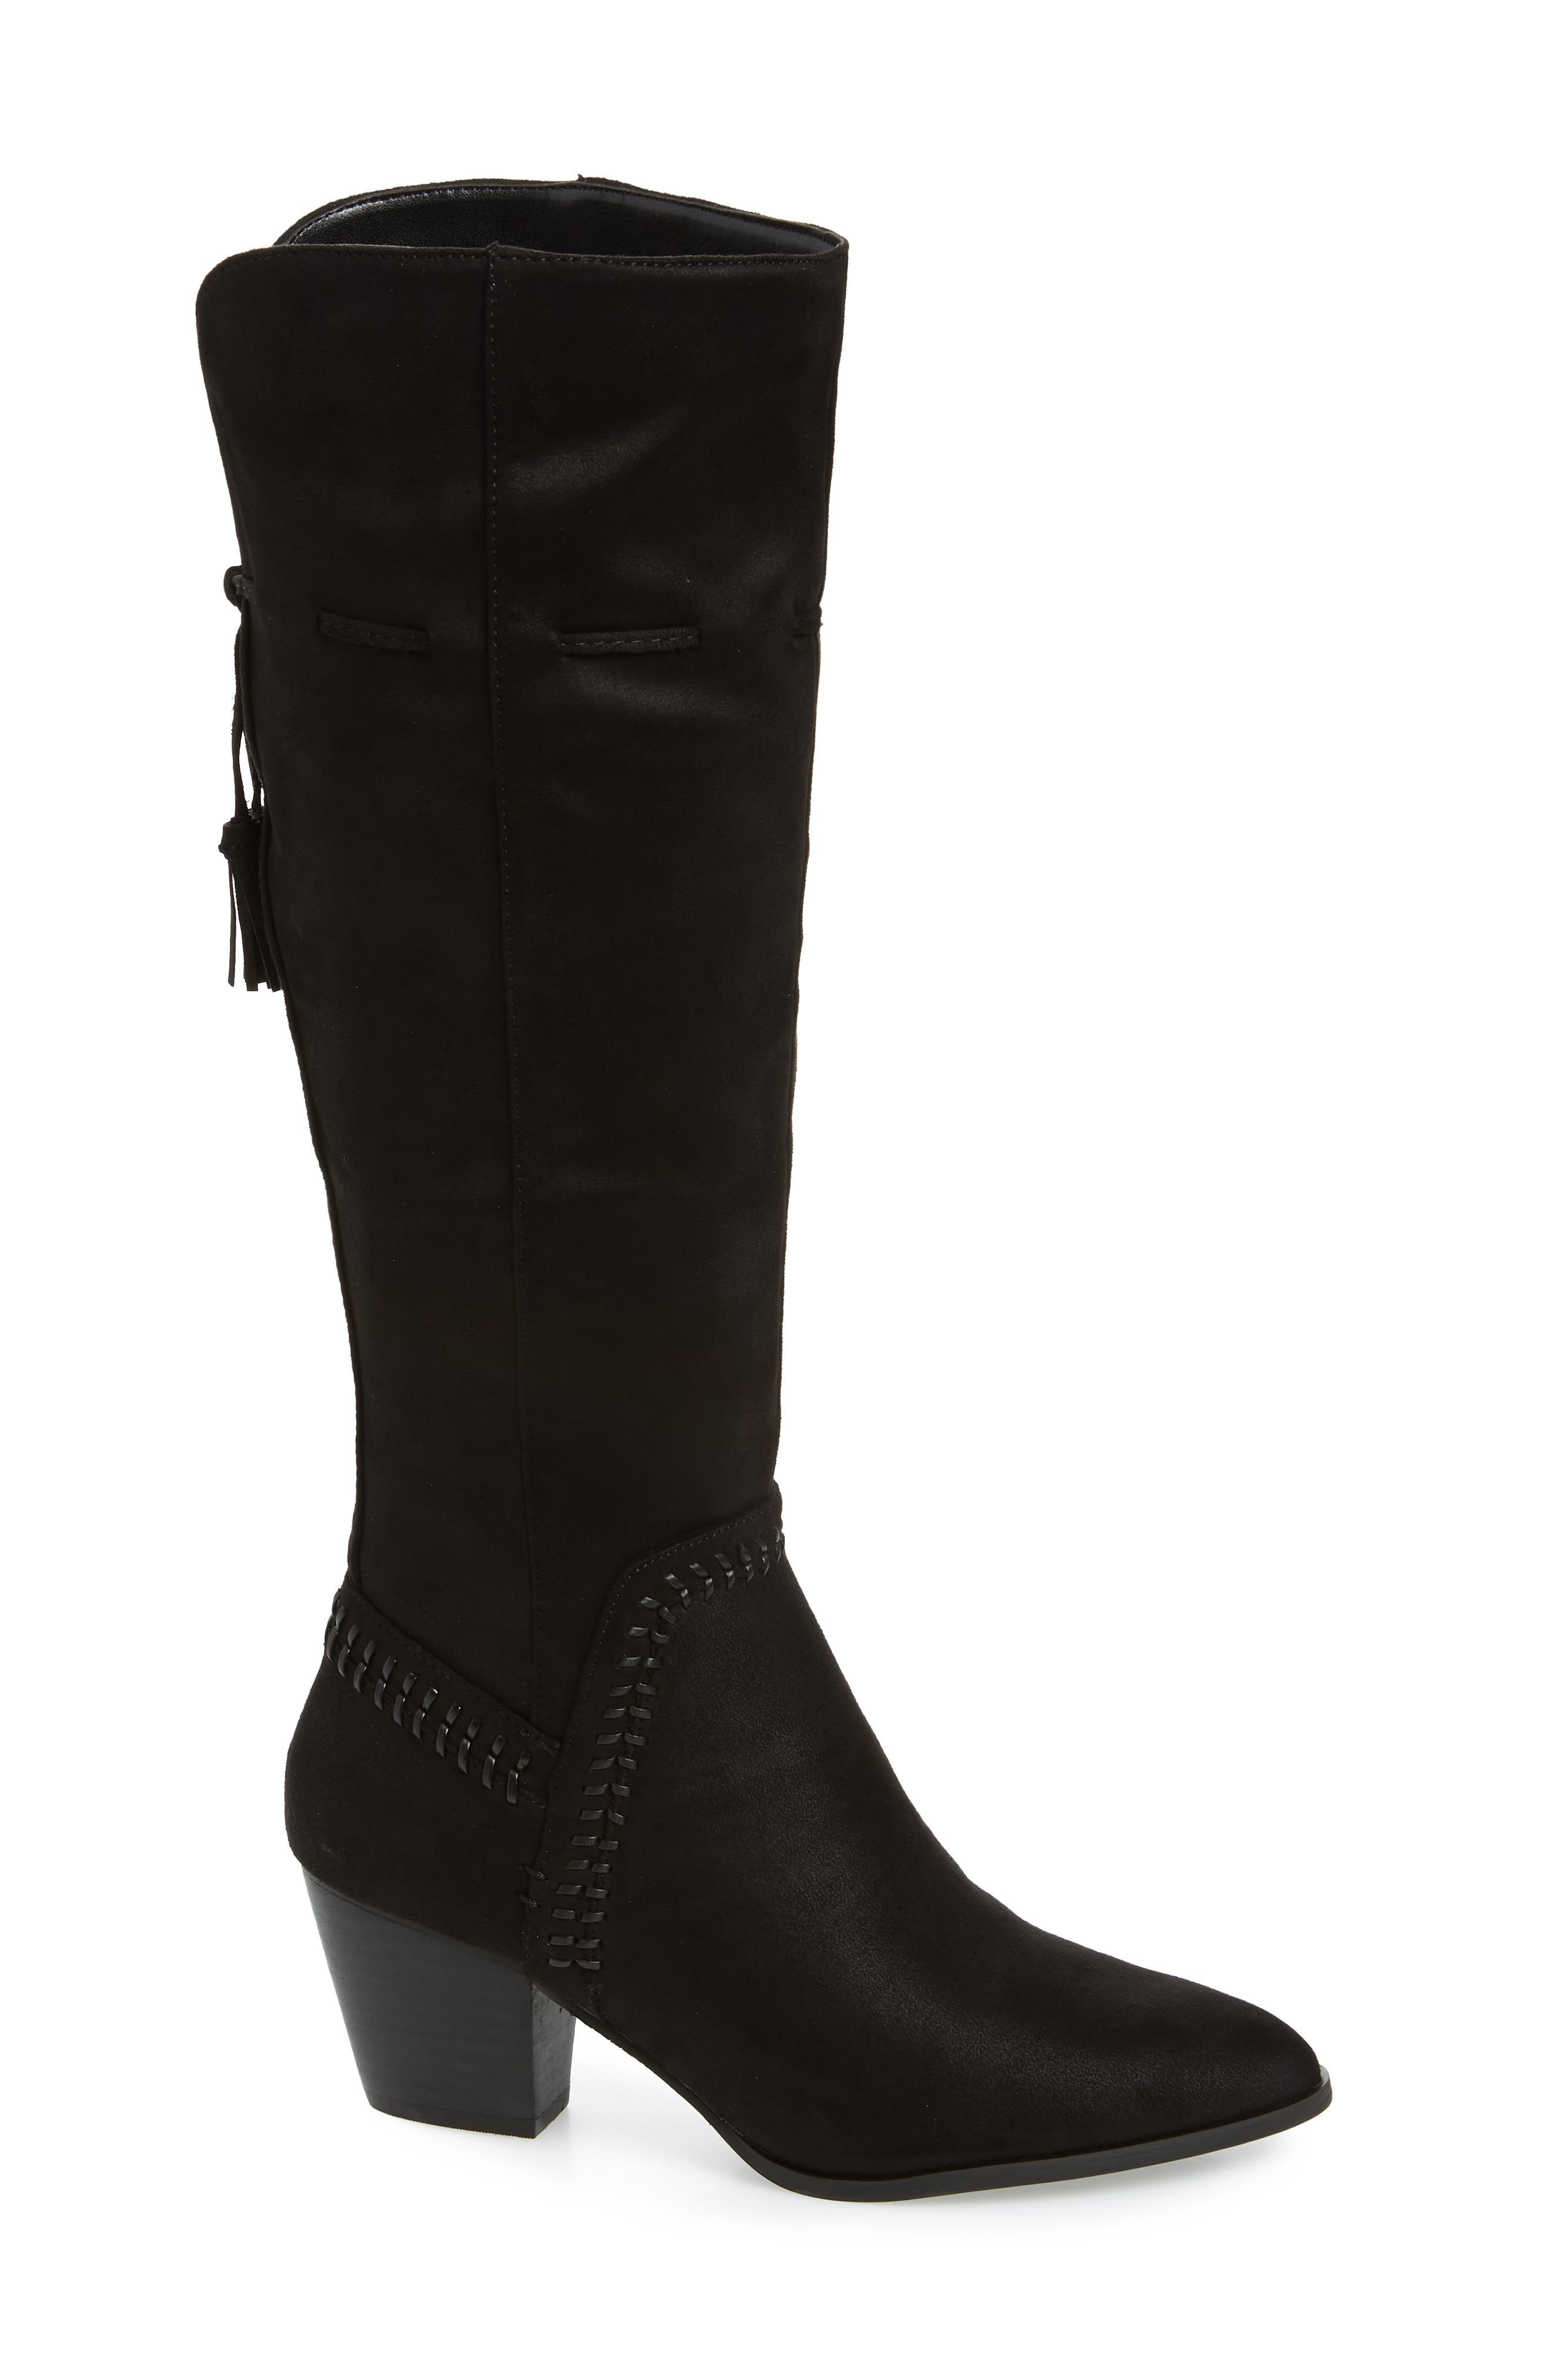 BELLA VITA Eleanor II Knee High Boot, Main, color, BLACK